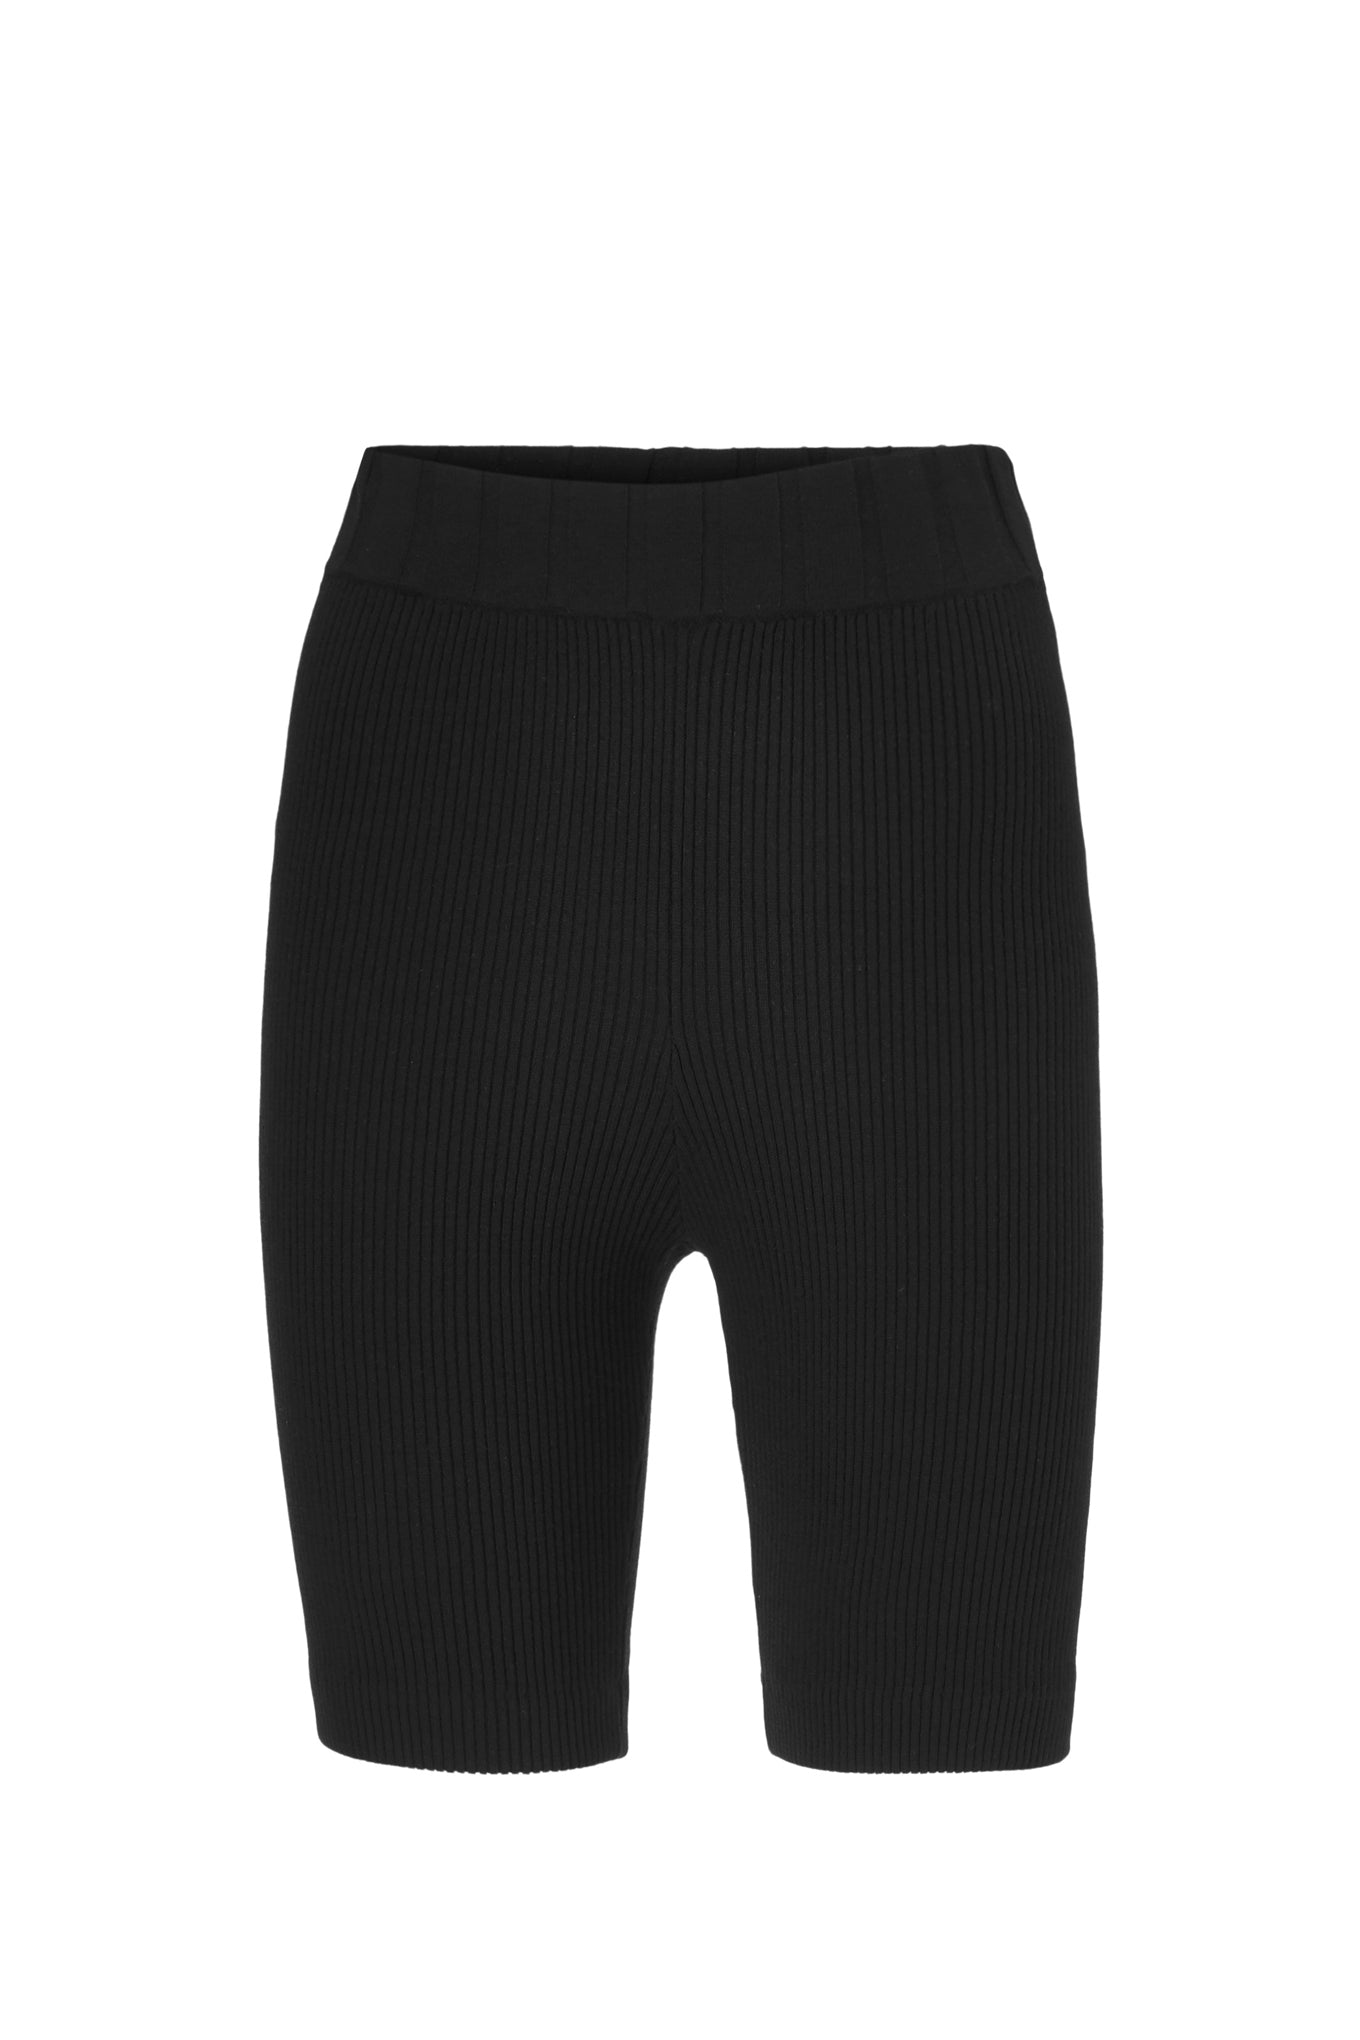 Nixon Knit Shorts - Black - Silk/Cotton